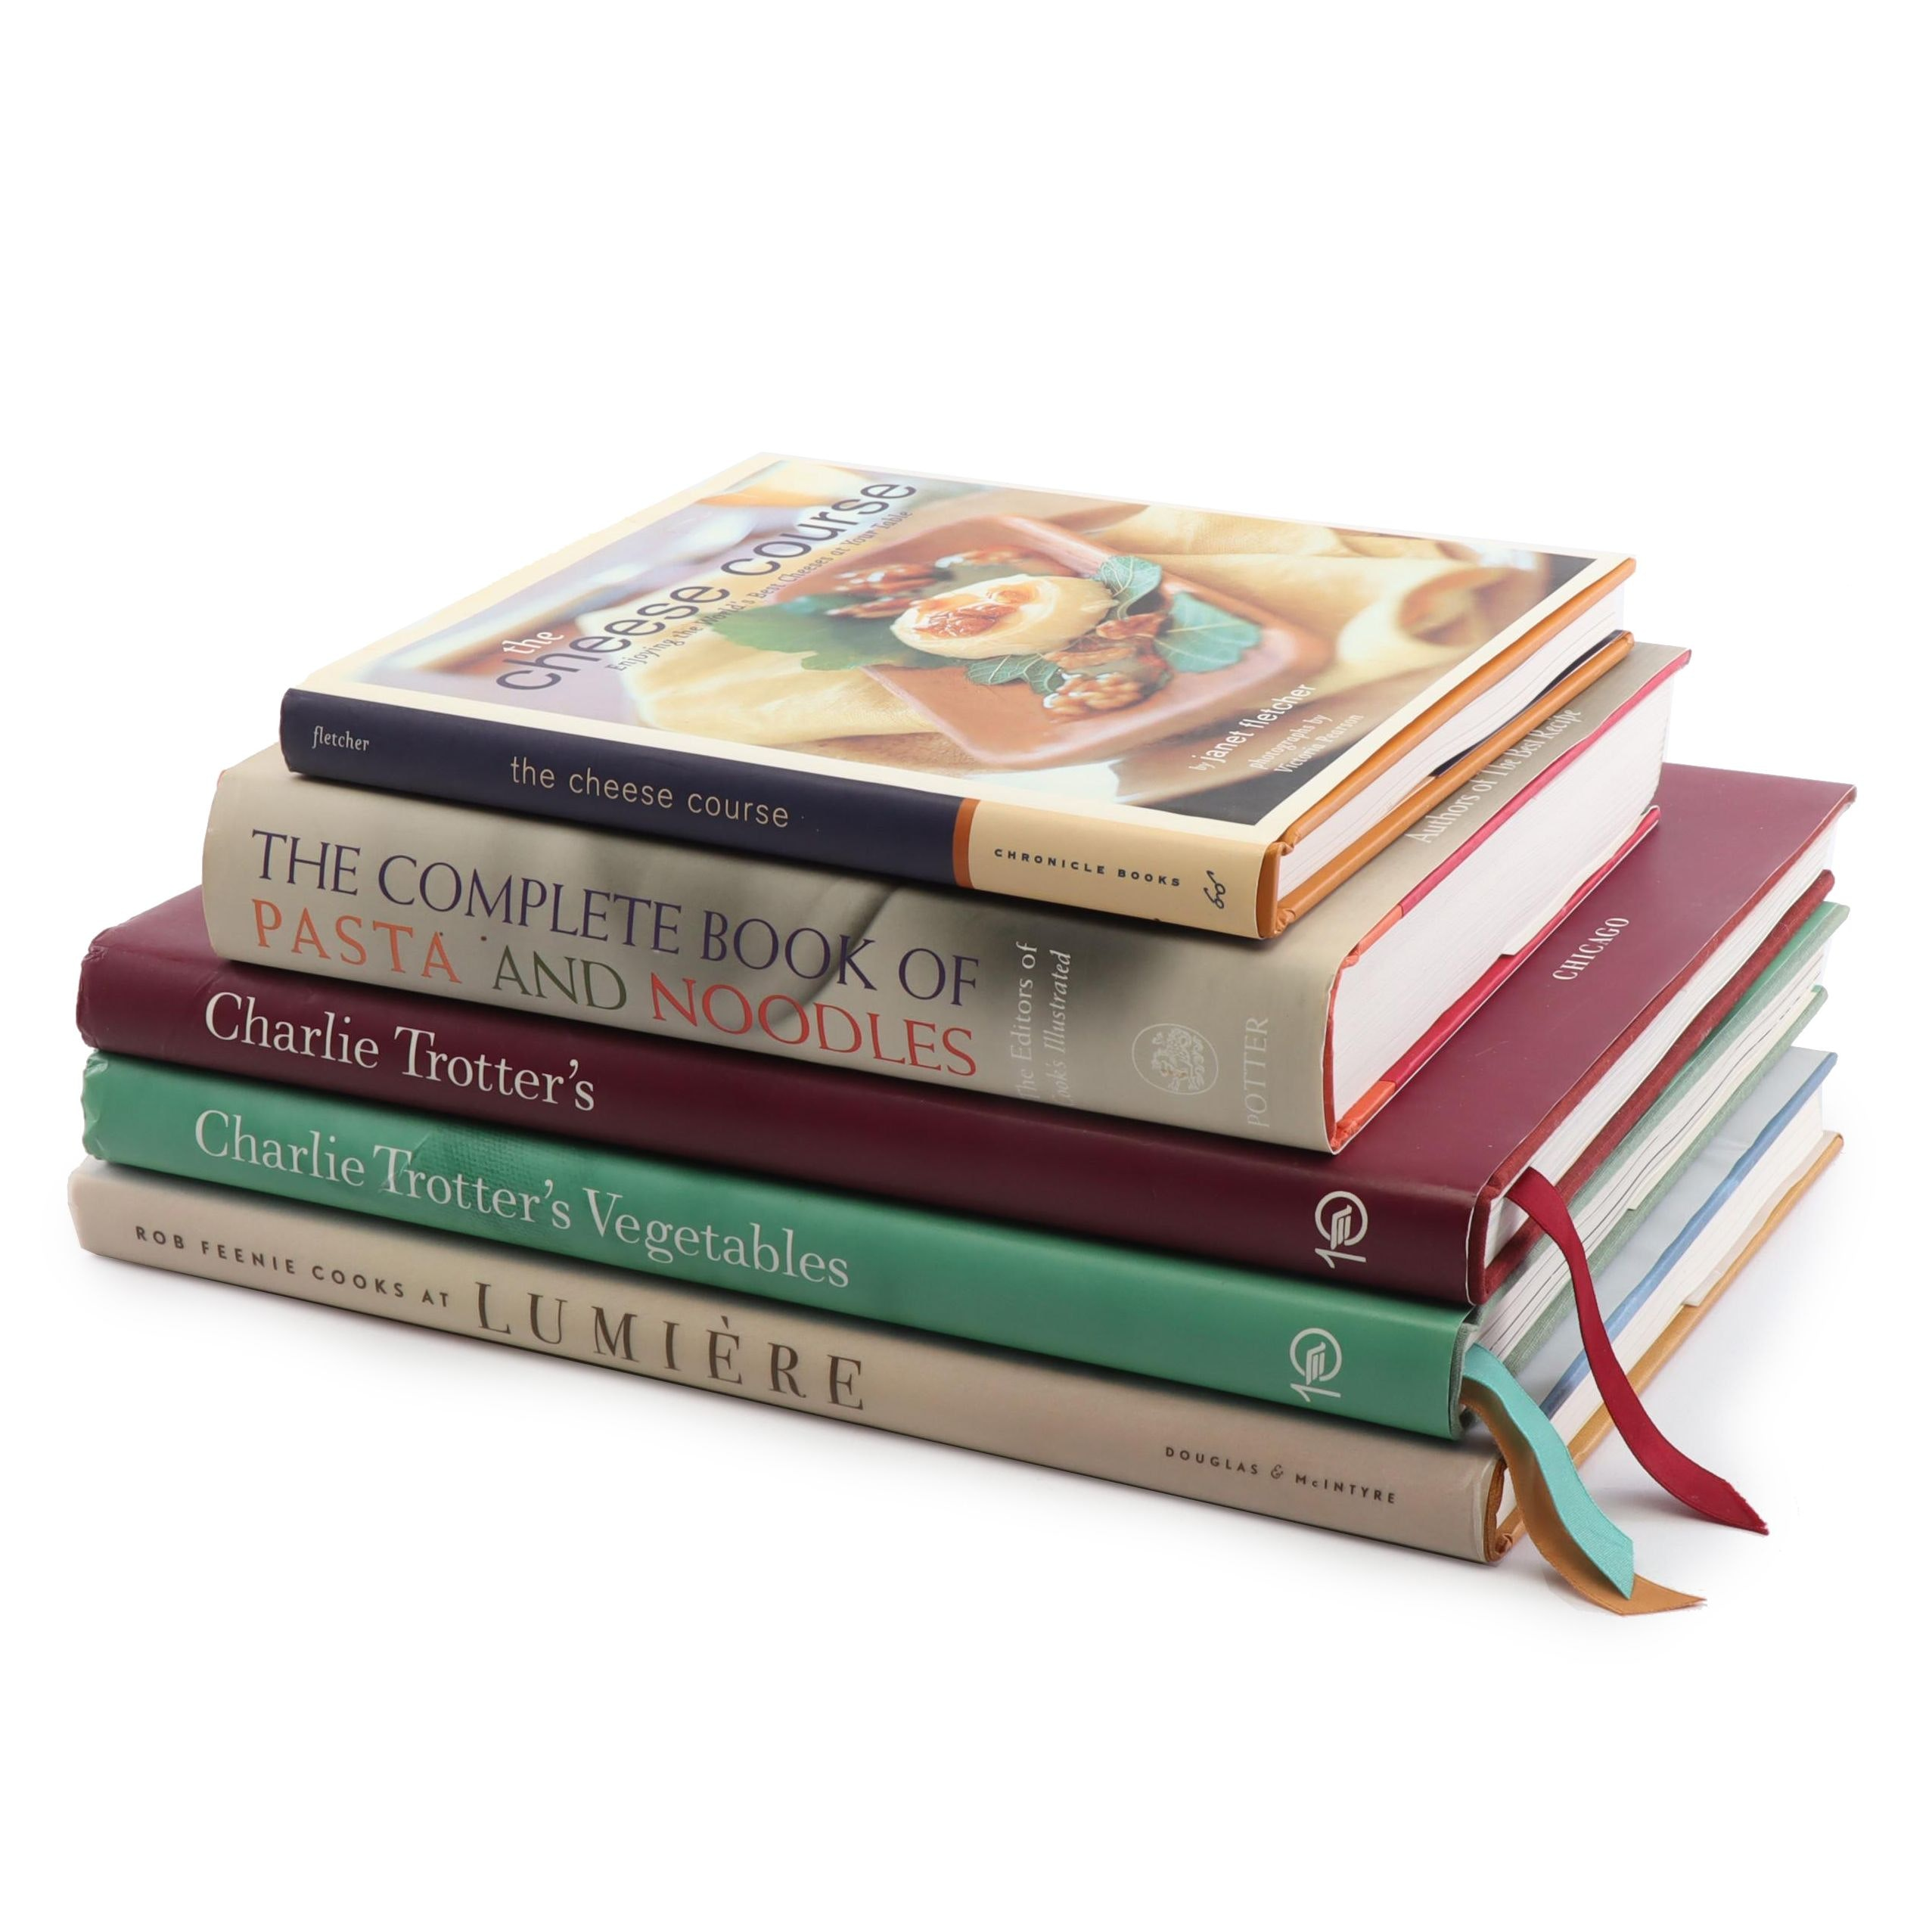 Cookbooks Featuring Charlie Trotter's and The Complete Book of Pasta and Noodles